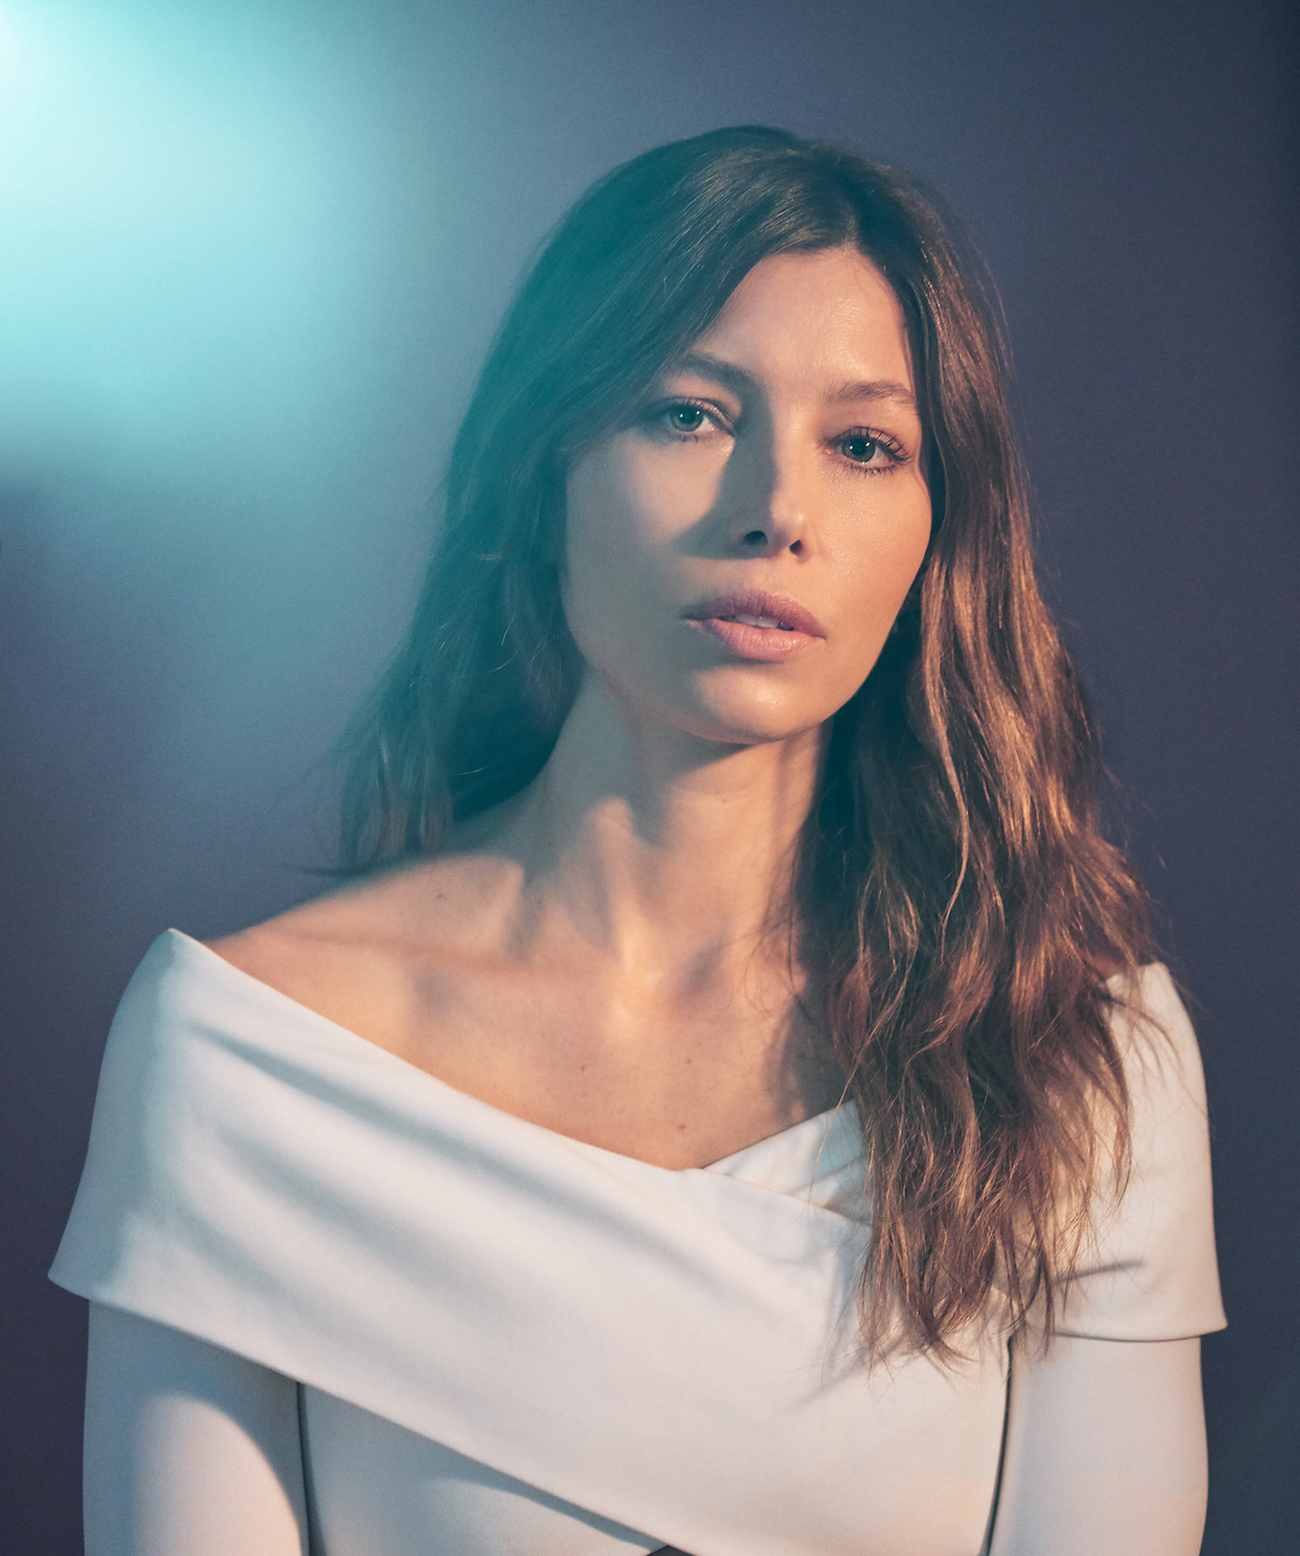 Jessica-Biel-Backstage-Magazine-June-201800002.jpg